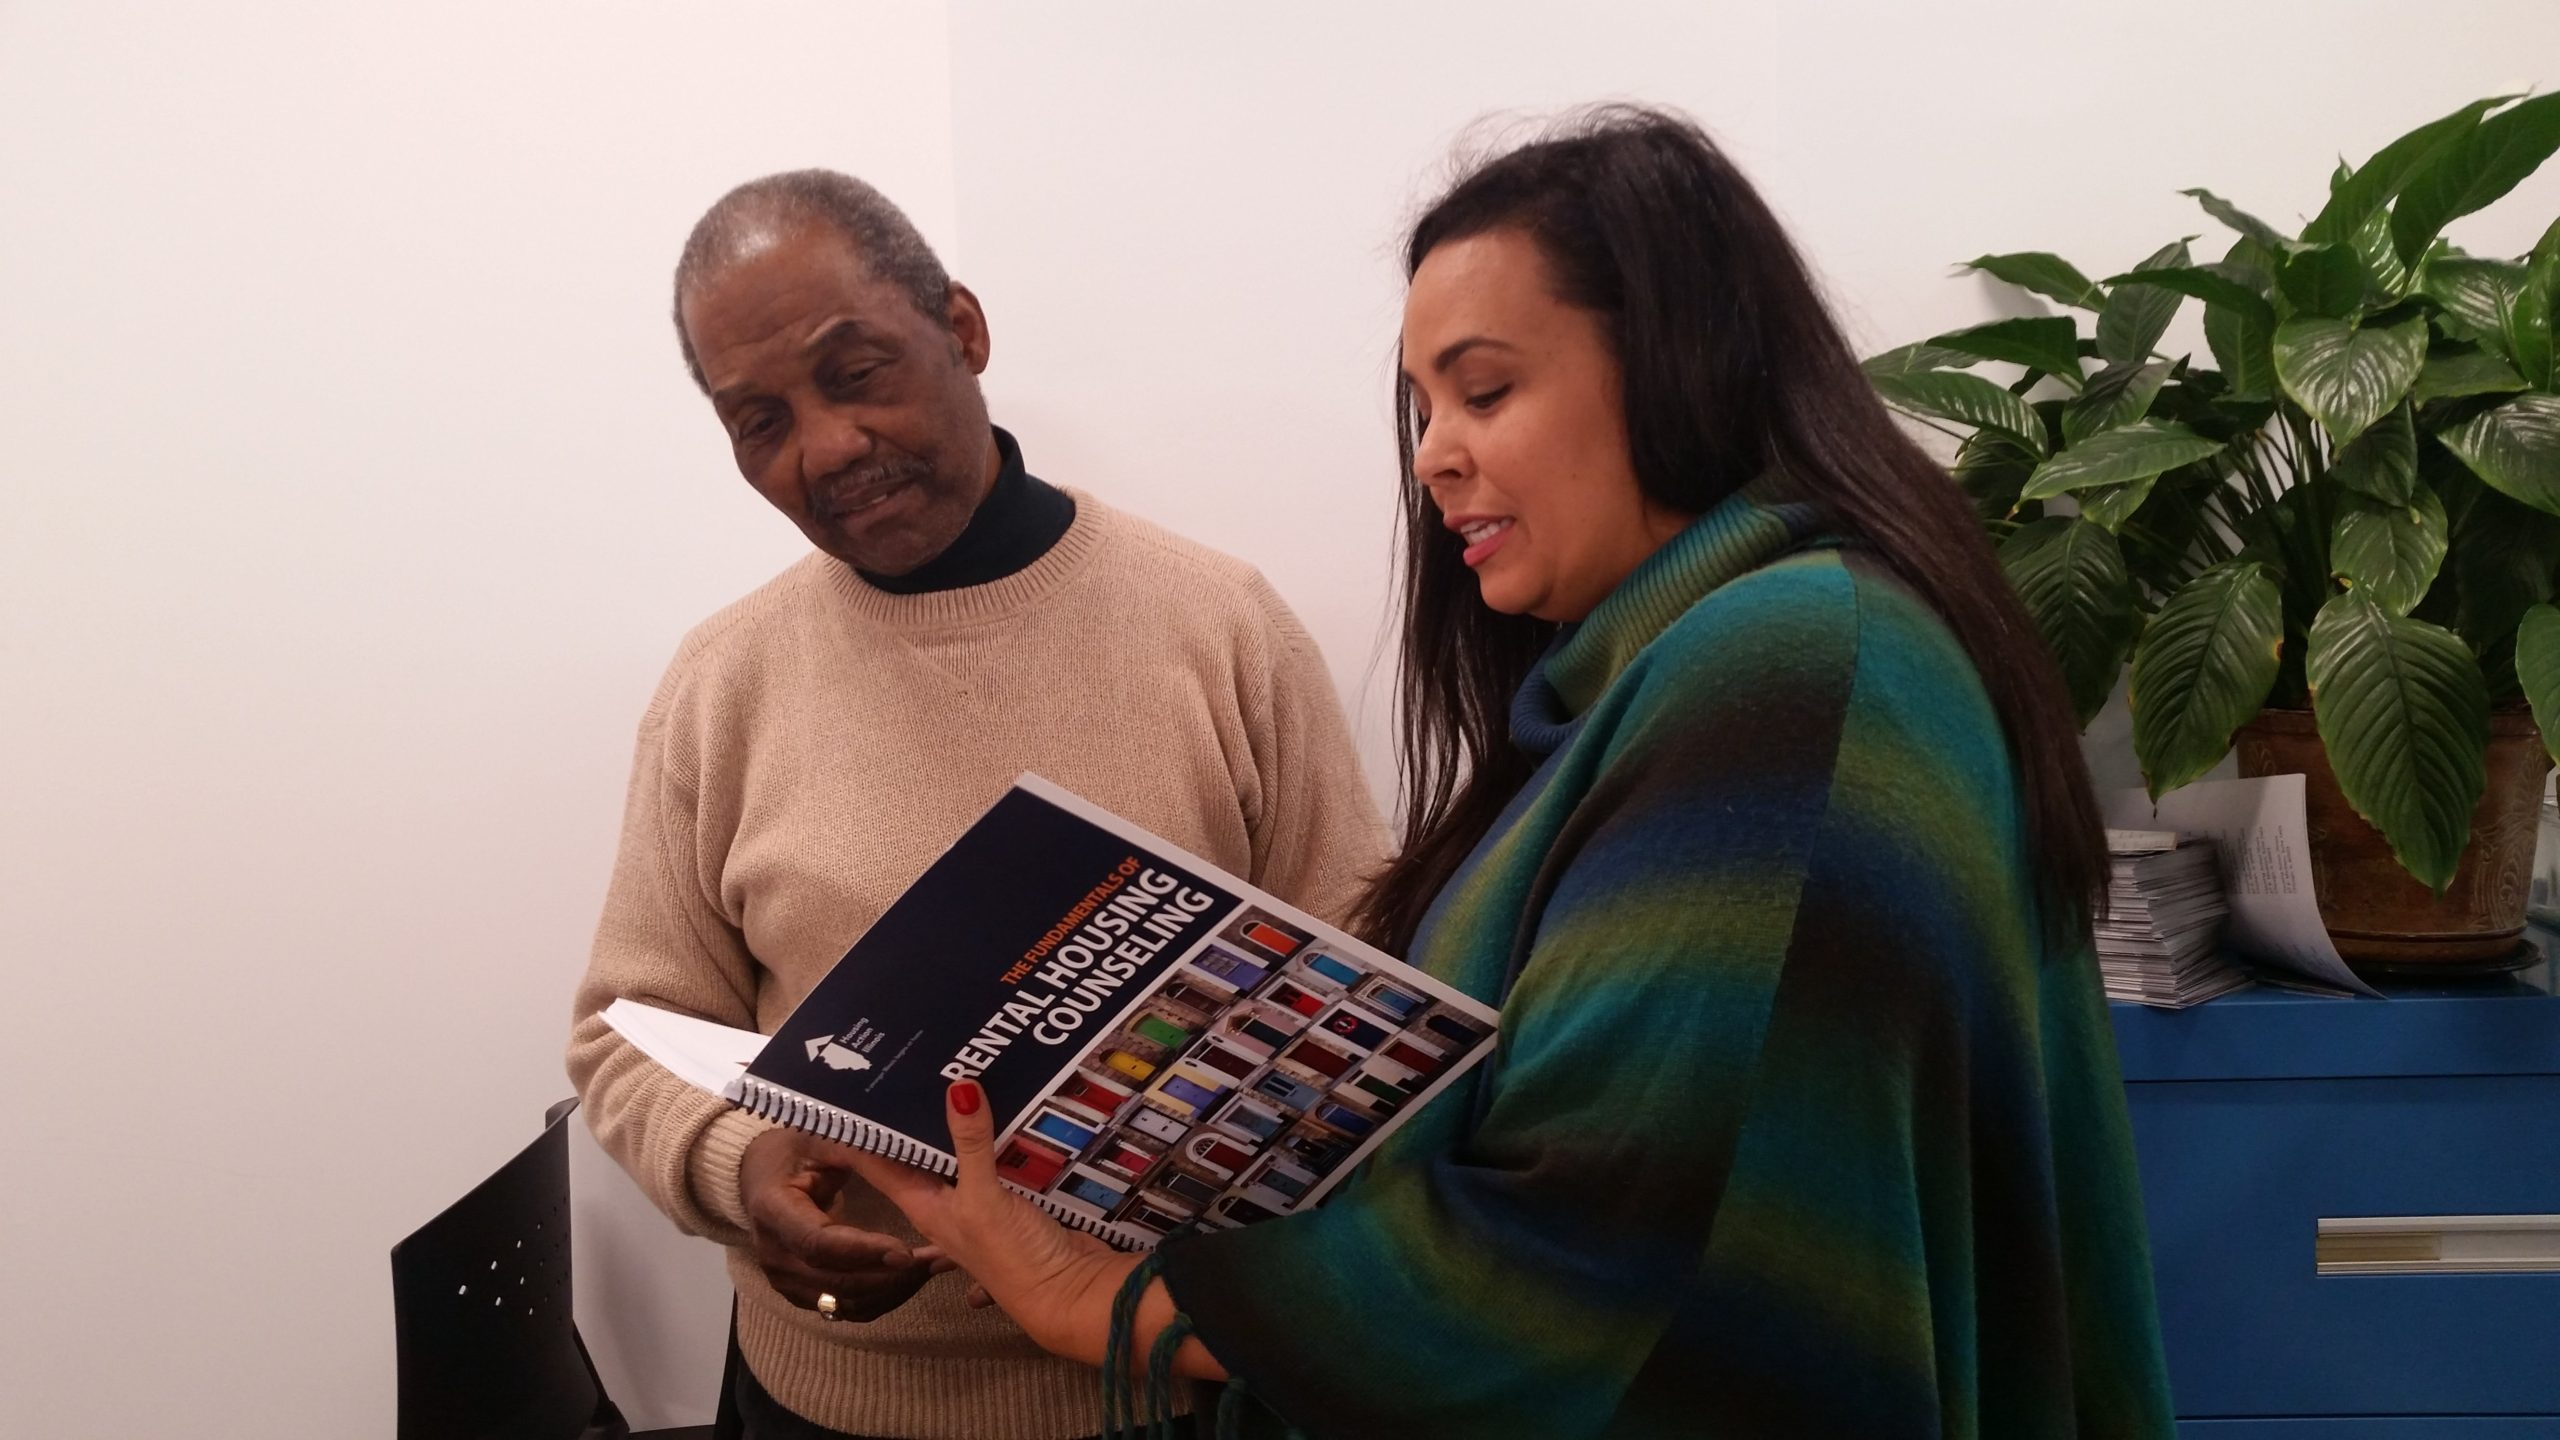 Bibian and Taft looking at rental counseling course book